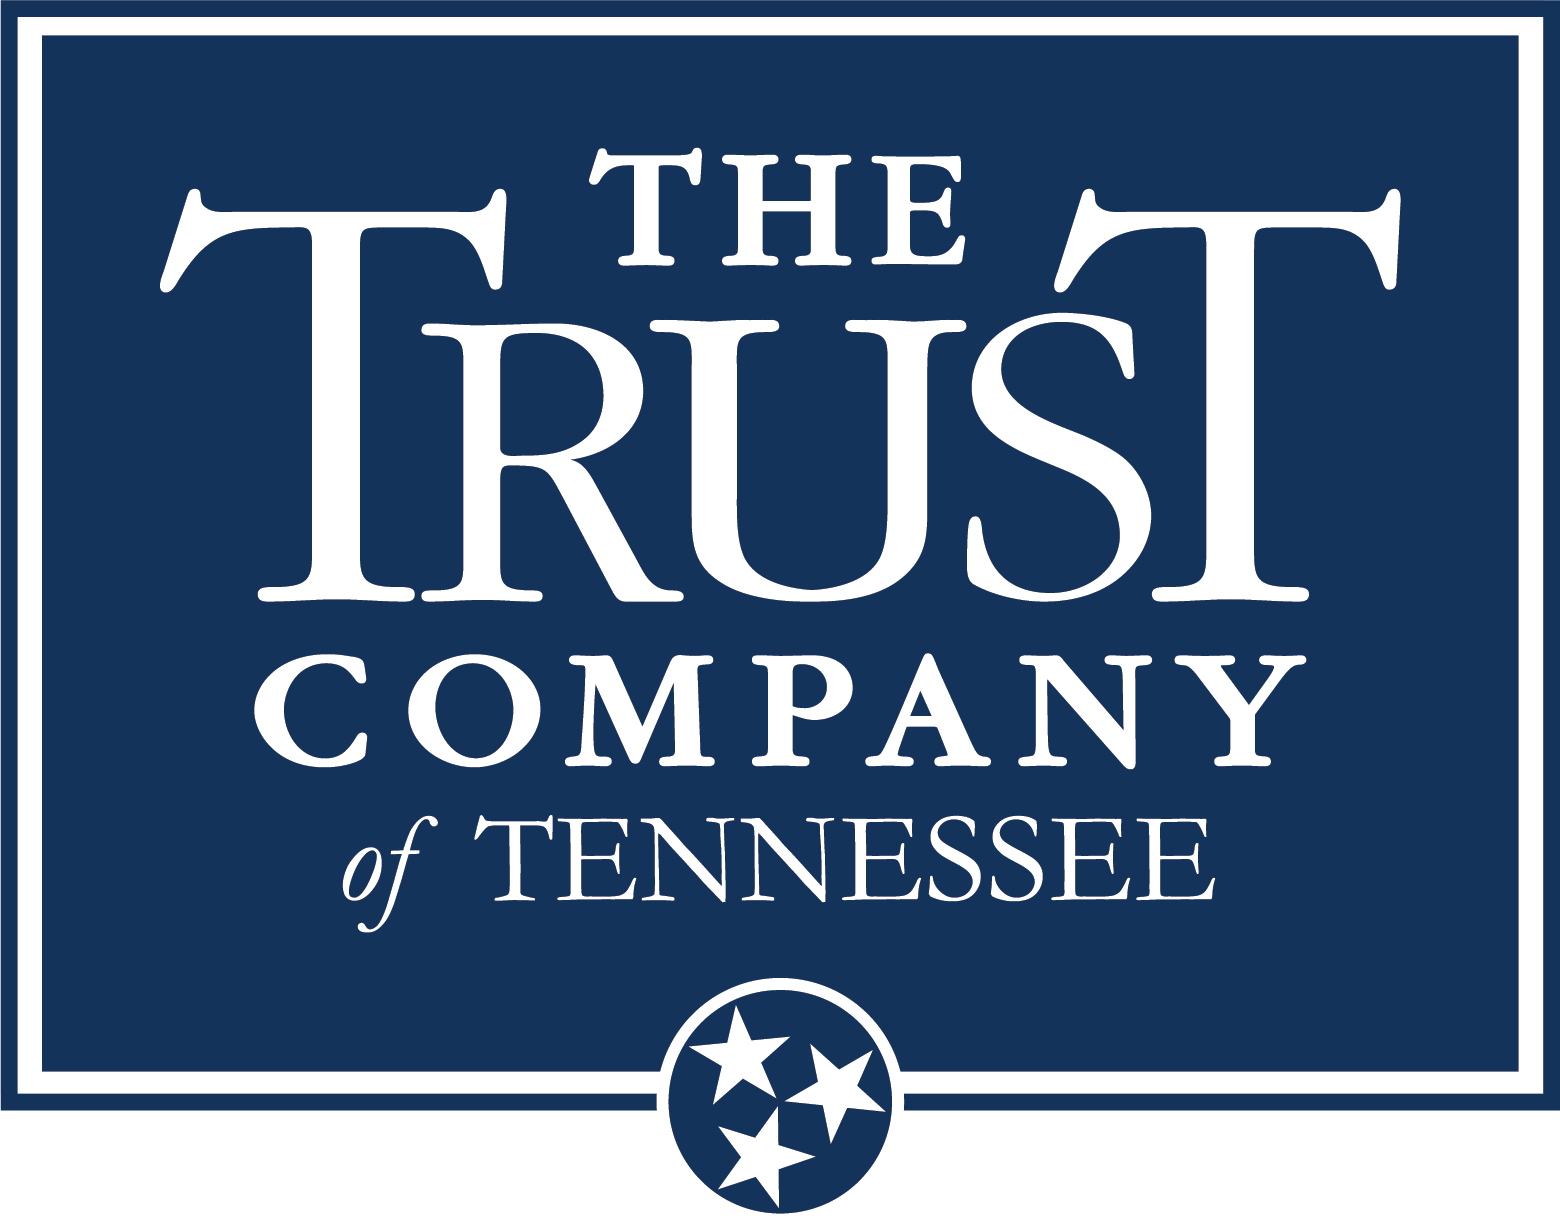 The Trust Company of Tennessee logo